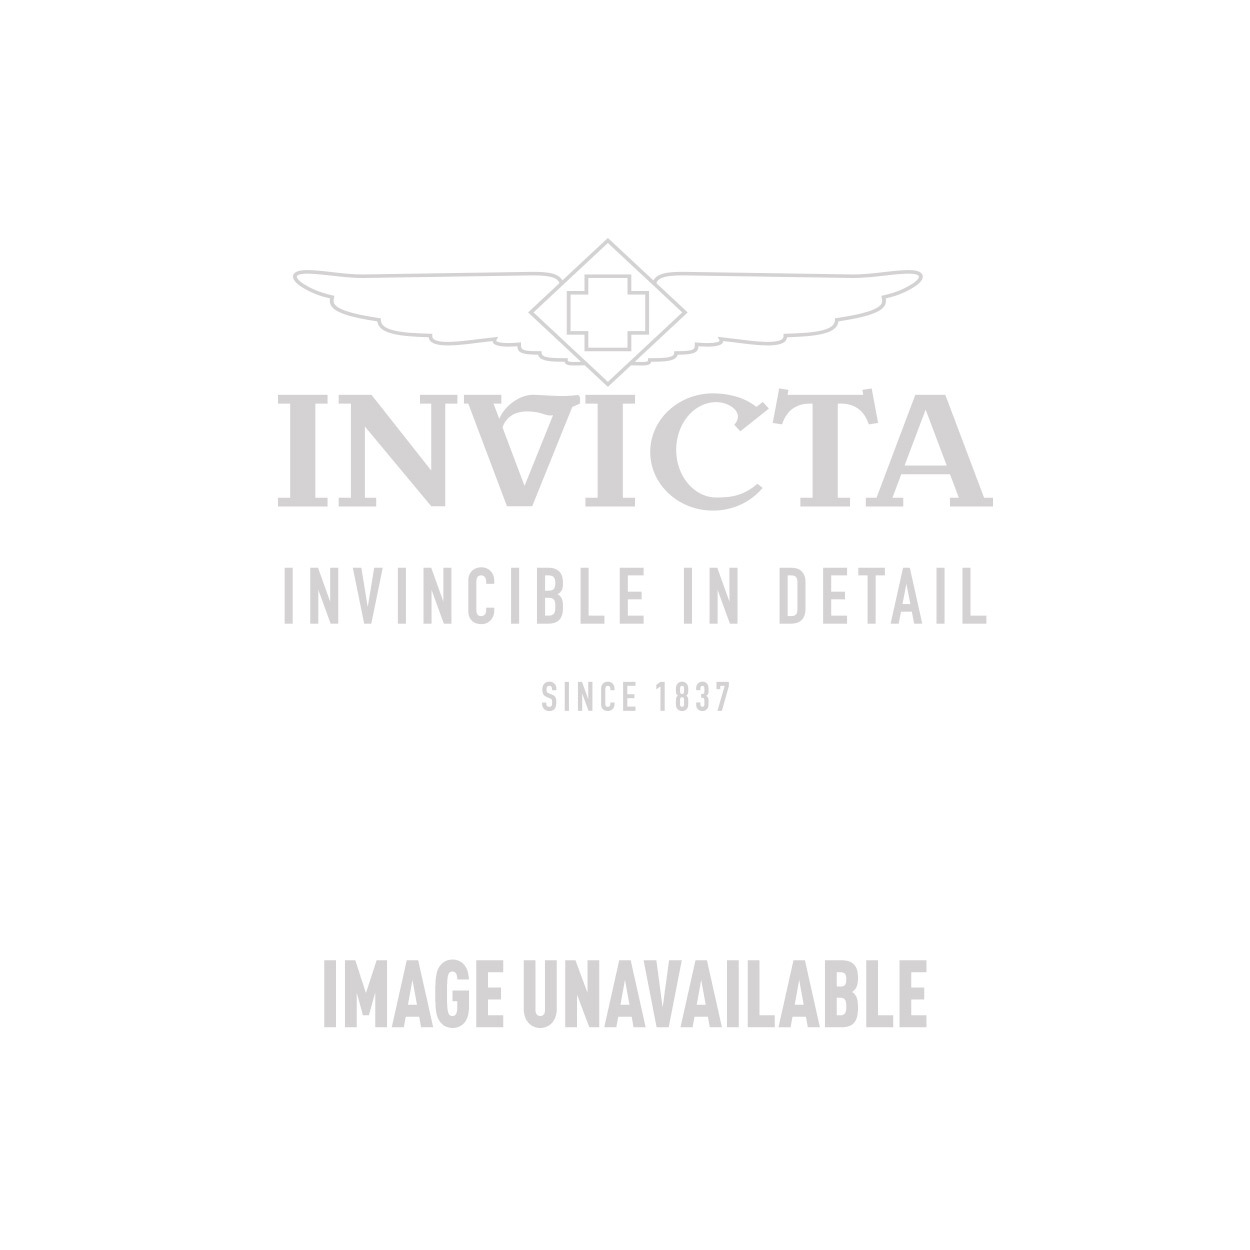 Invicta Pro Diver  Quartz Watch - Rose Gold, Stainless Steel case Stainless Steel band - Model 12306